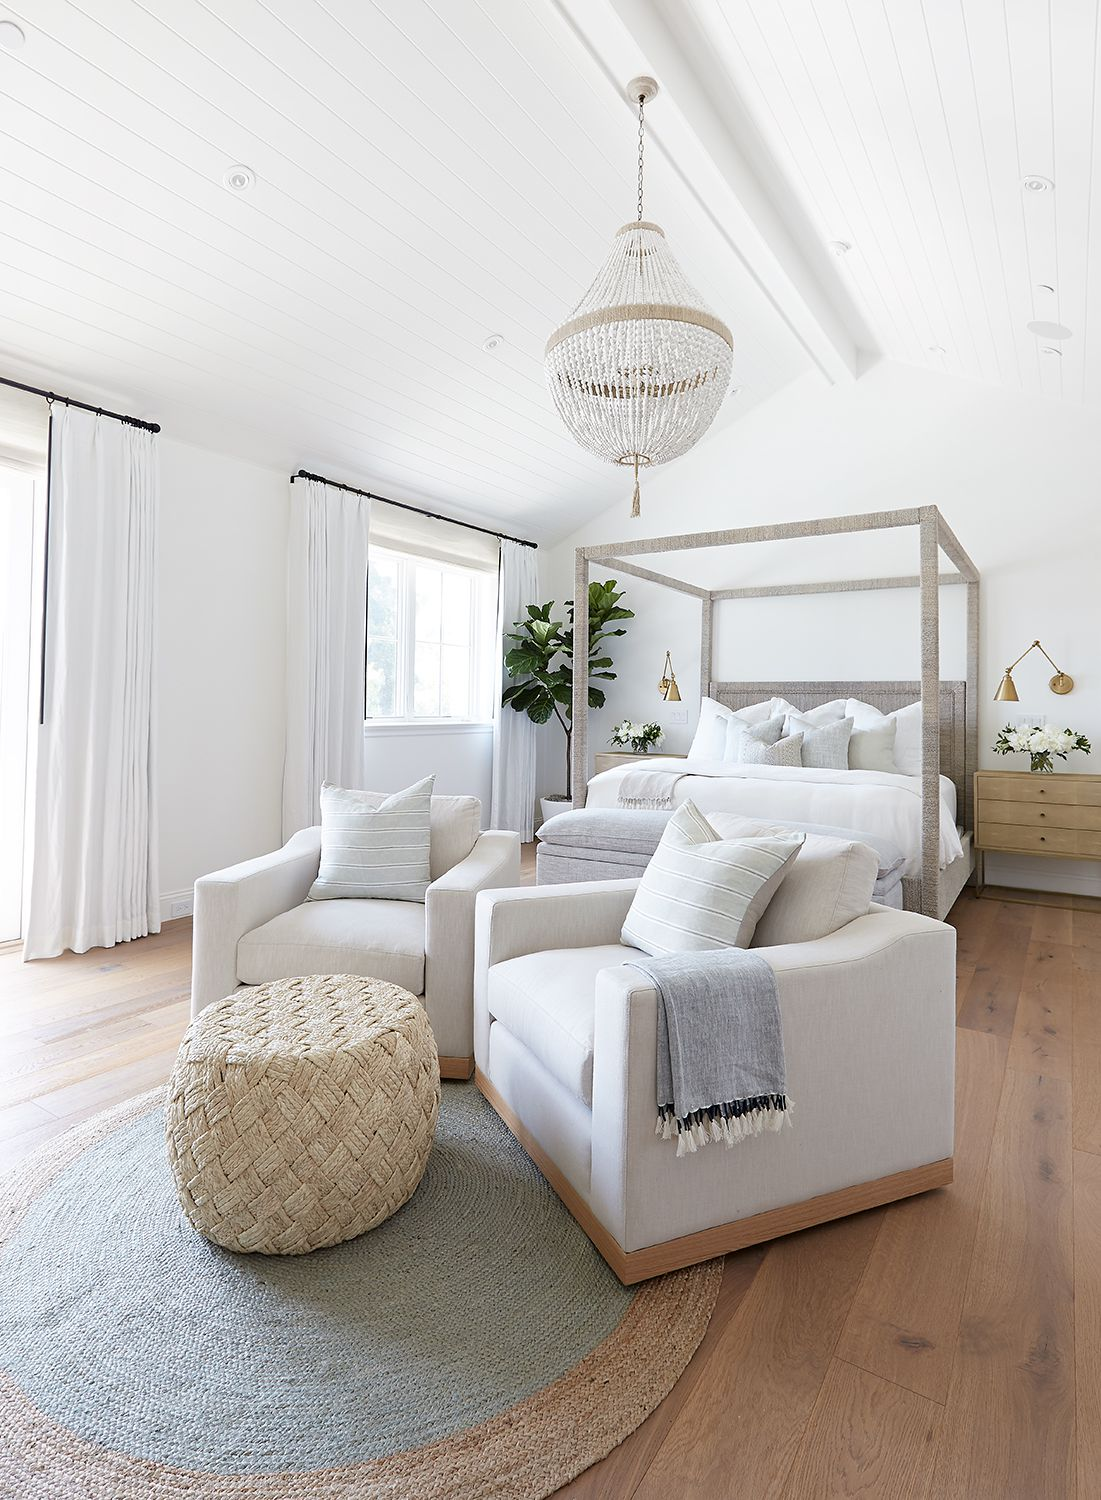 8 Designer Approved Bedroom Layouts That Never Fail,Vintage French Country Shabby Chic Decorating Ideas